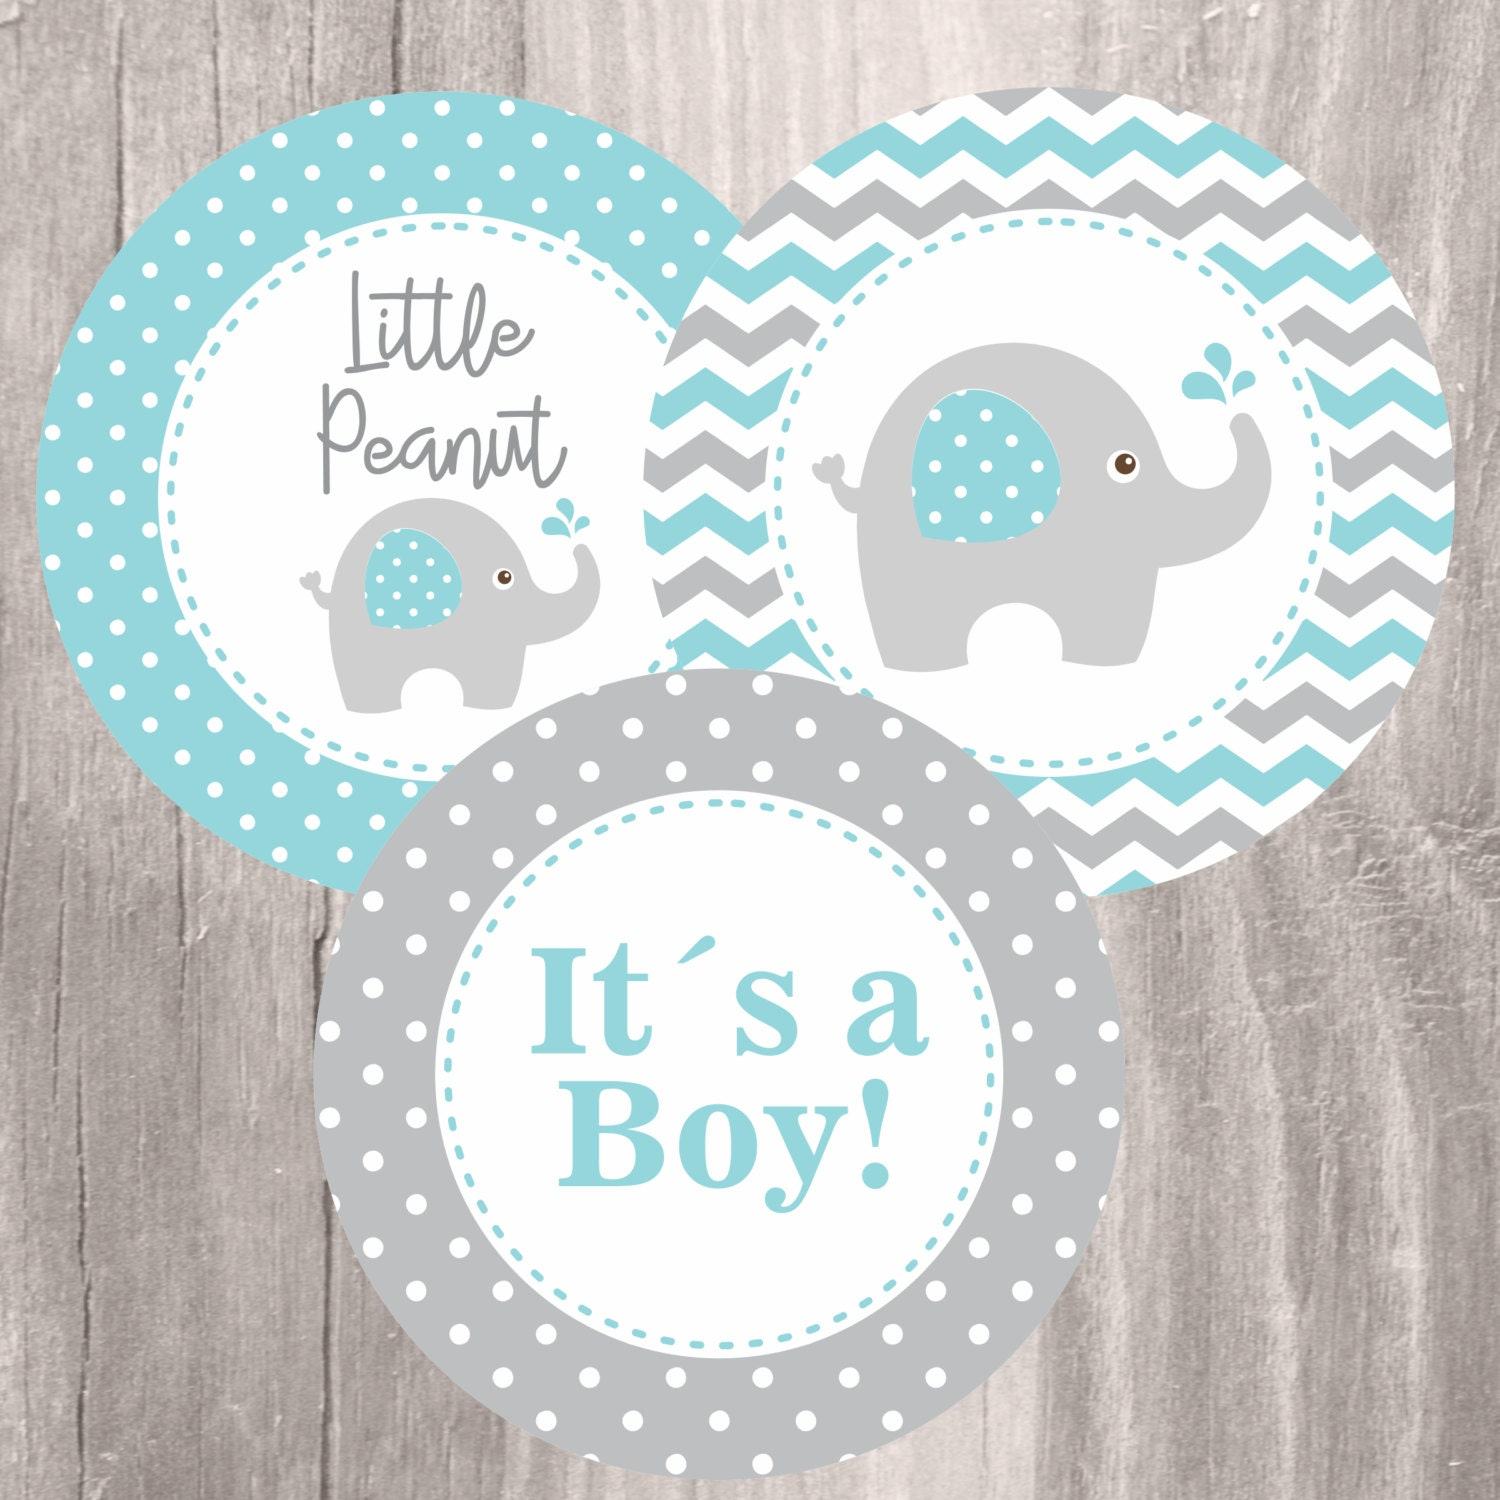 Elephant Themed Baby Shower: Elephant Baby Shower Printable Centerpieces Teal And Grey